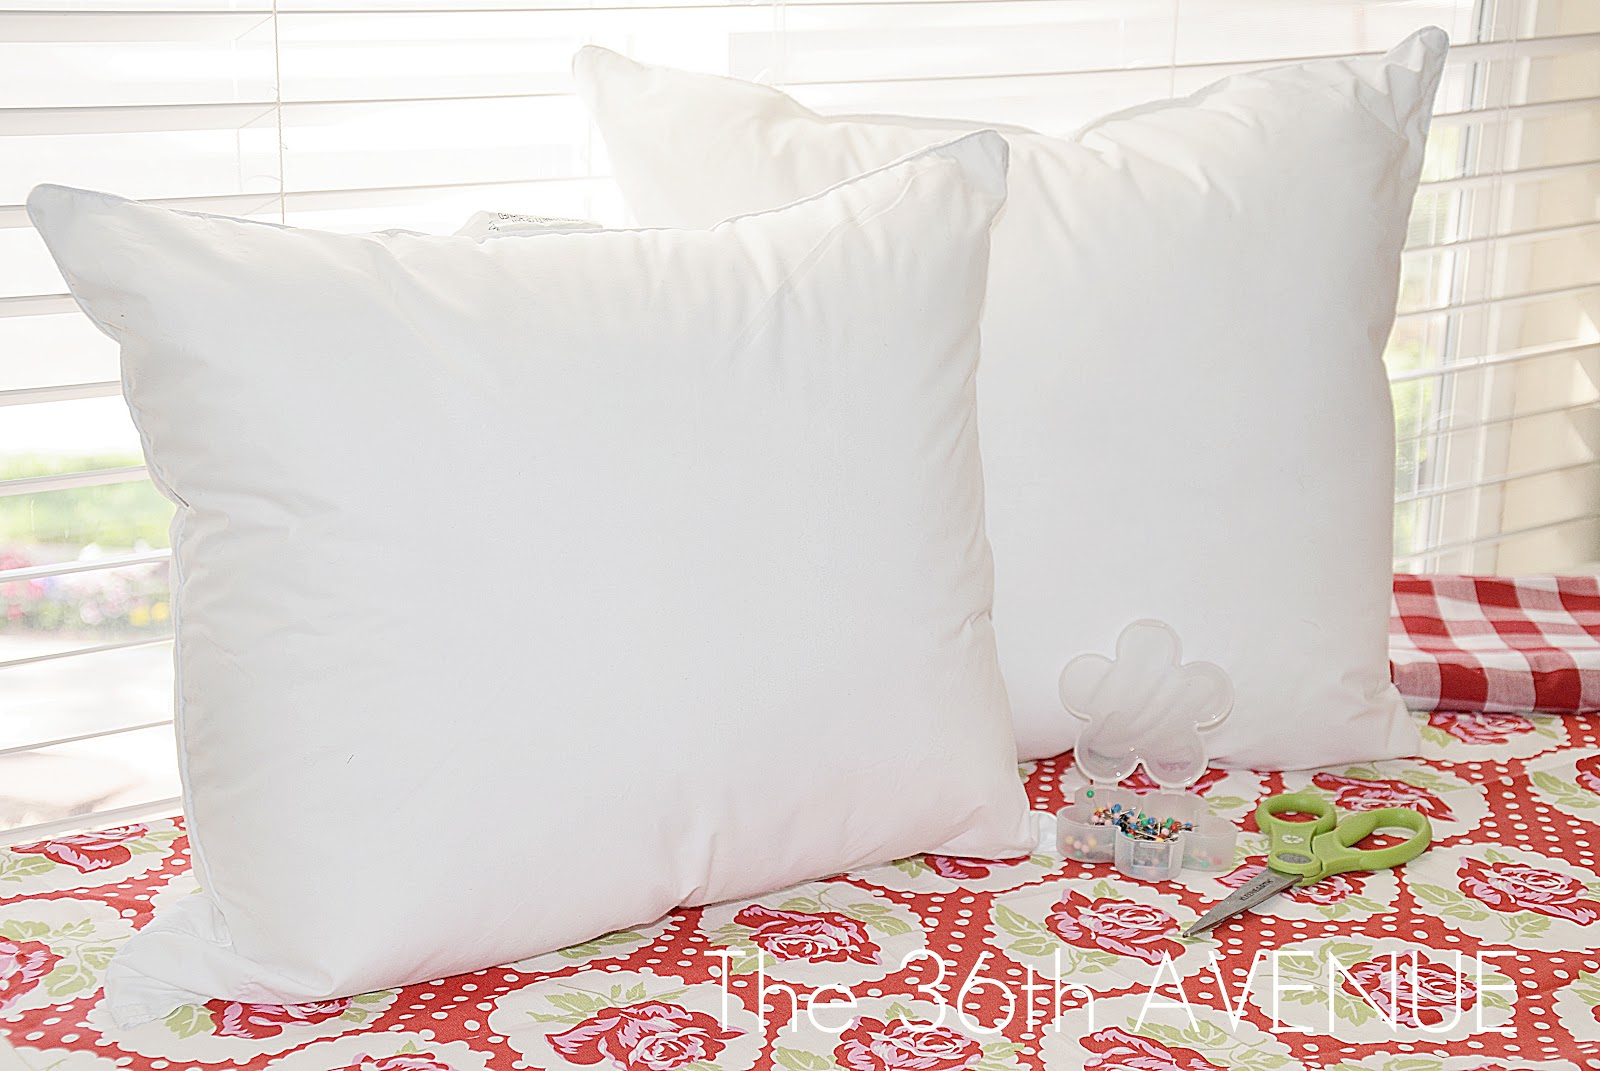 diy pillow insert from a king size pillow